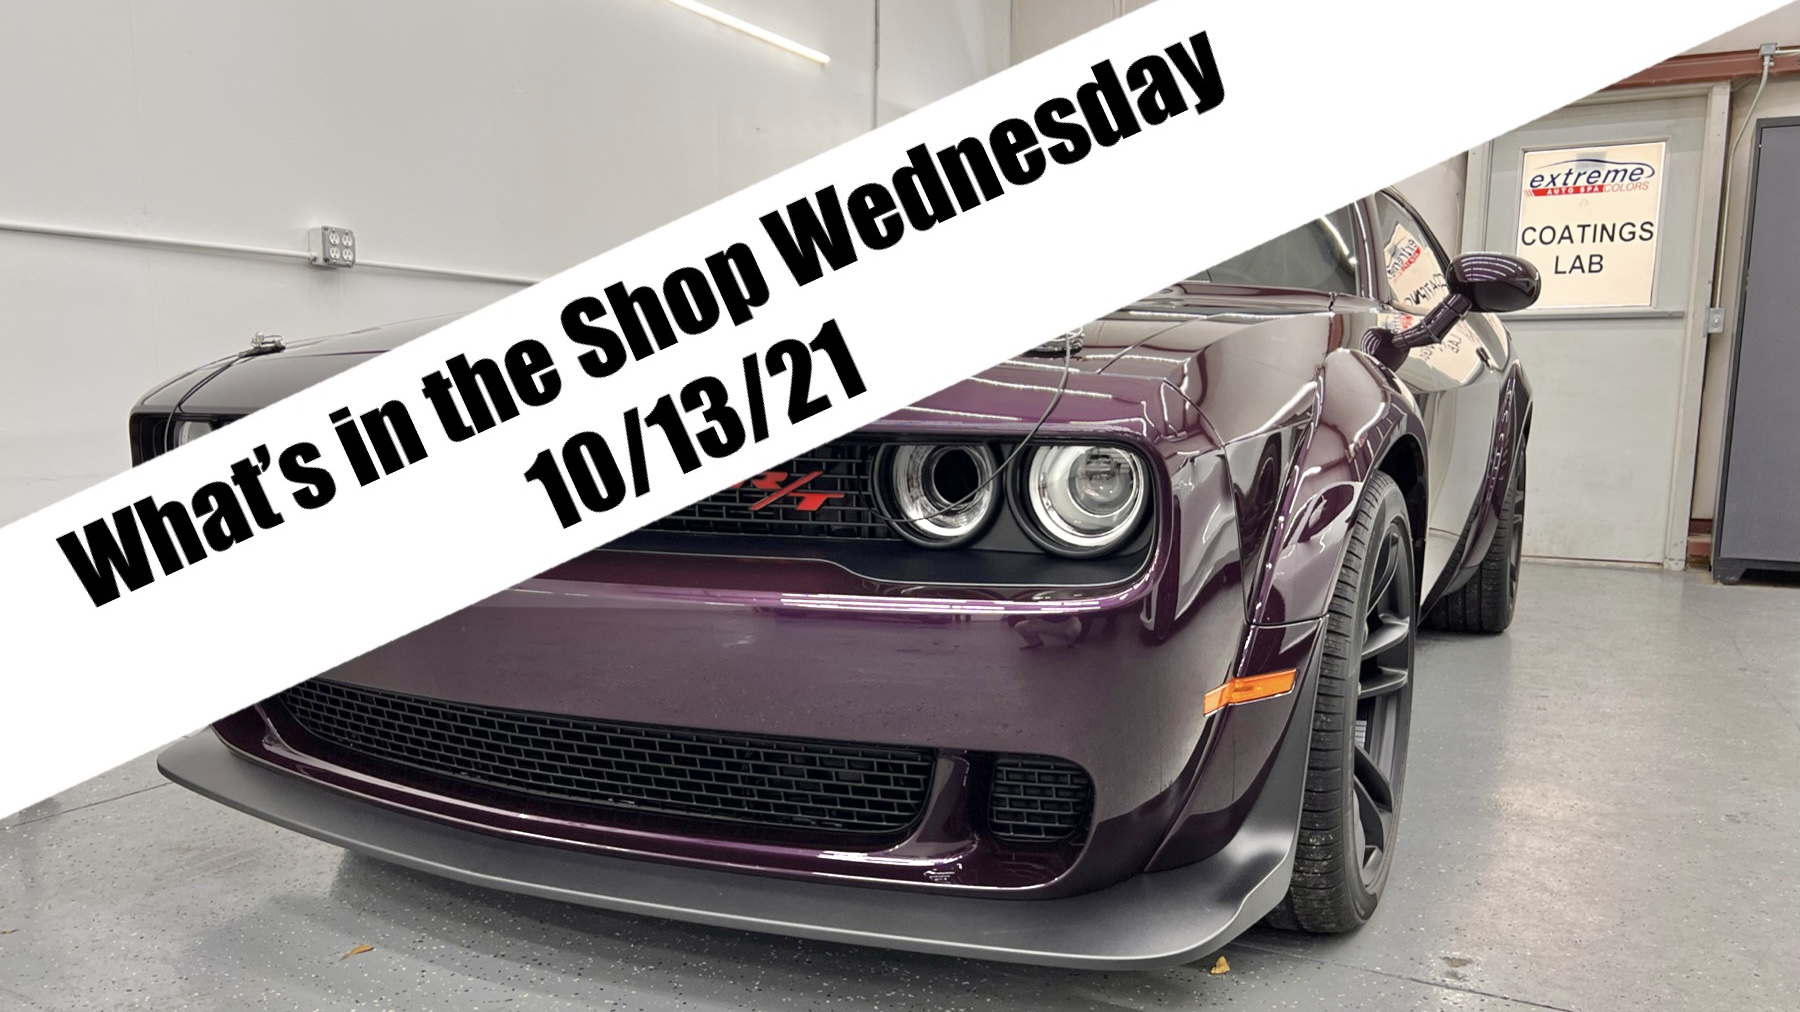 What's in the Shop Wednesday 10/13/21